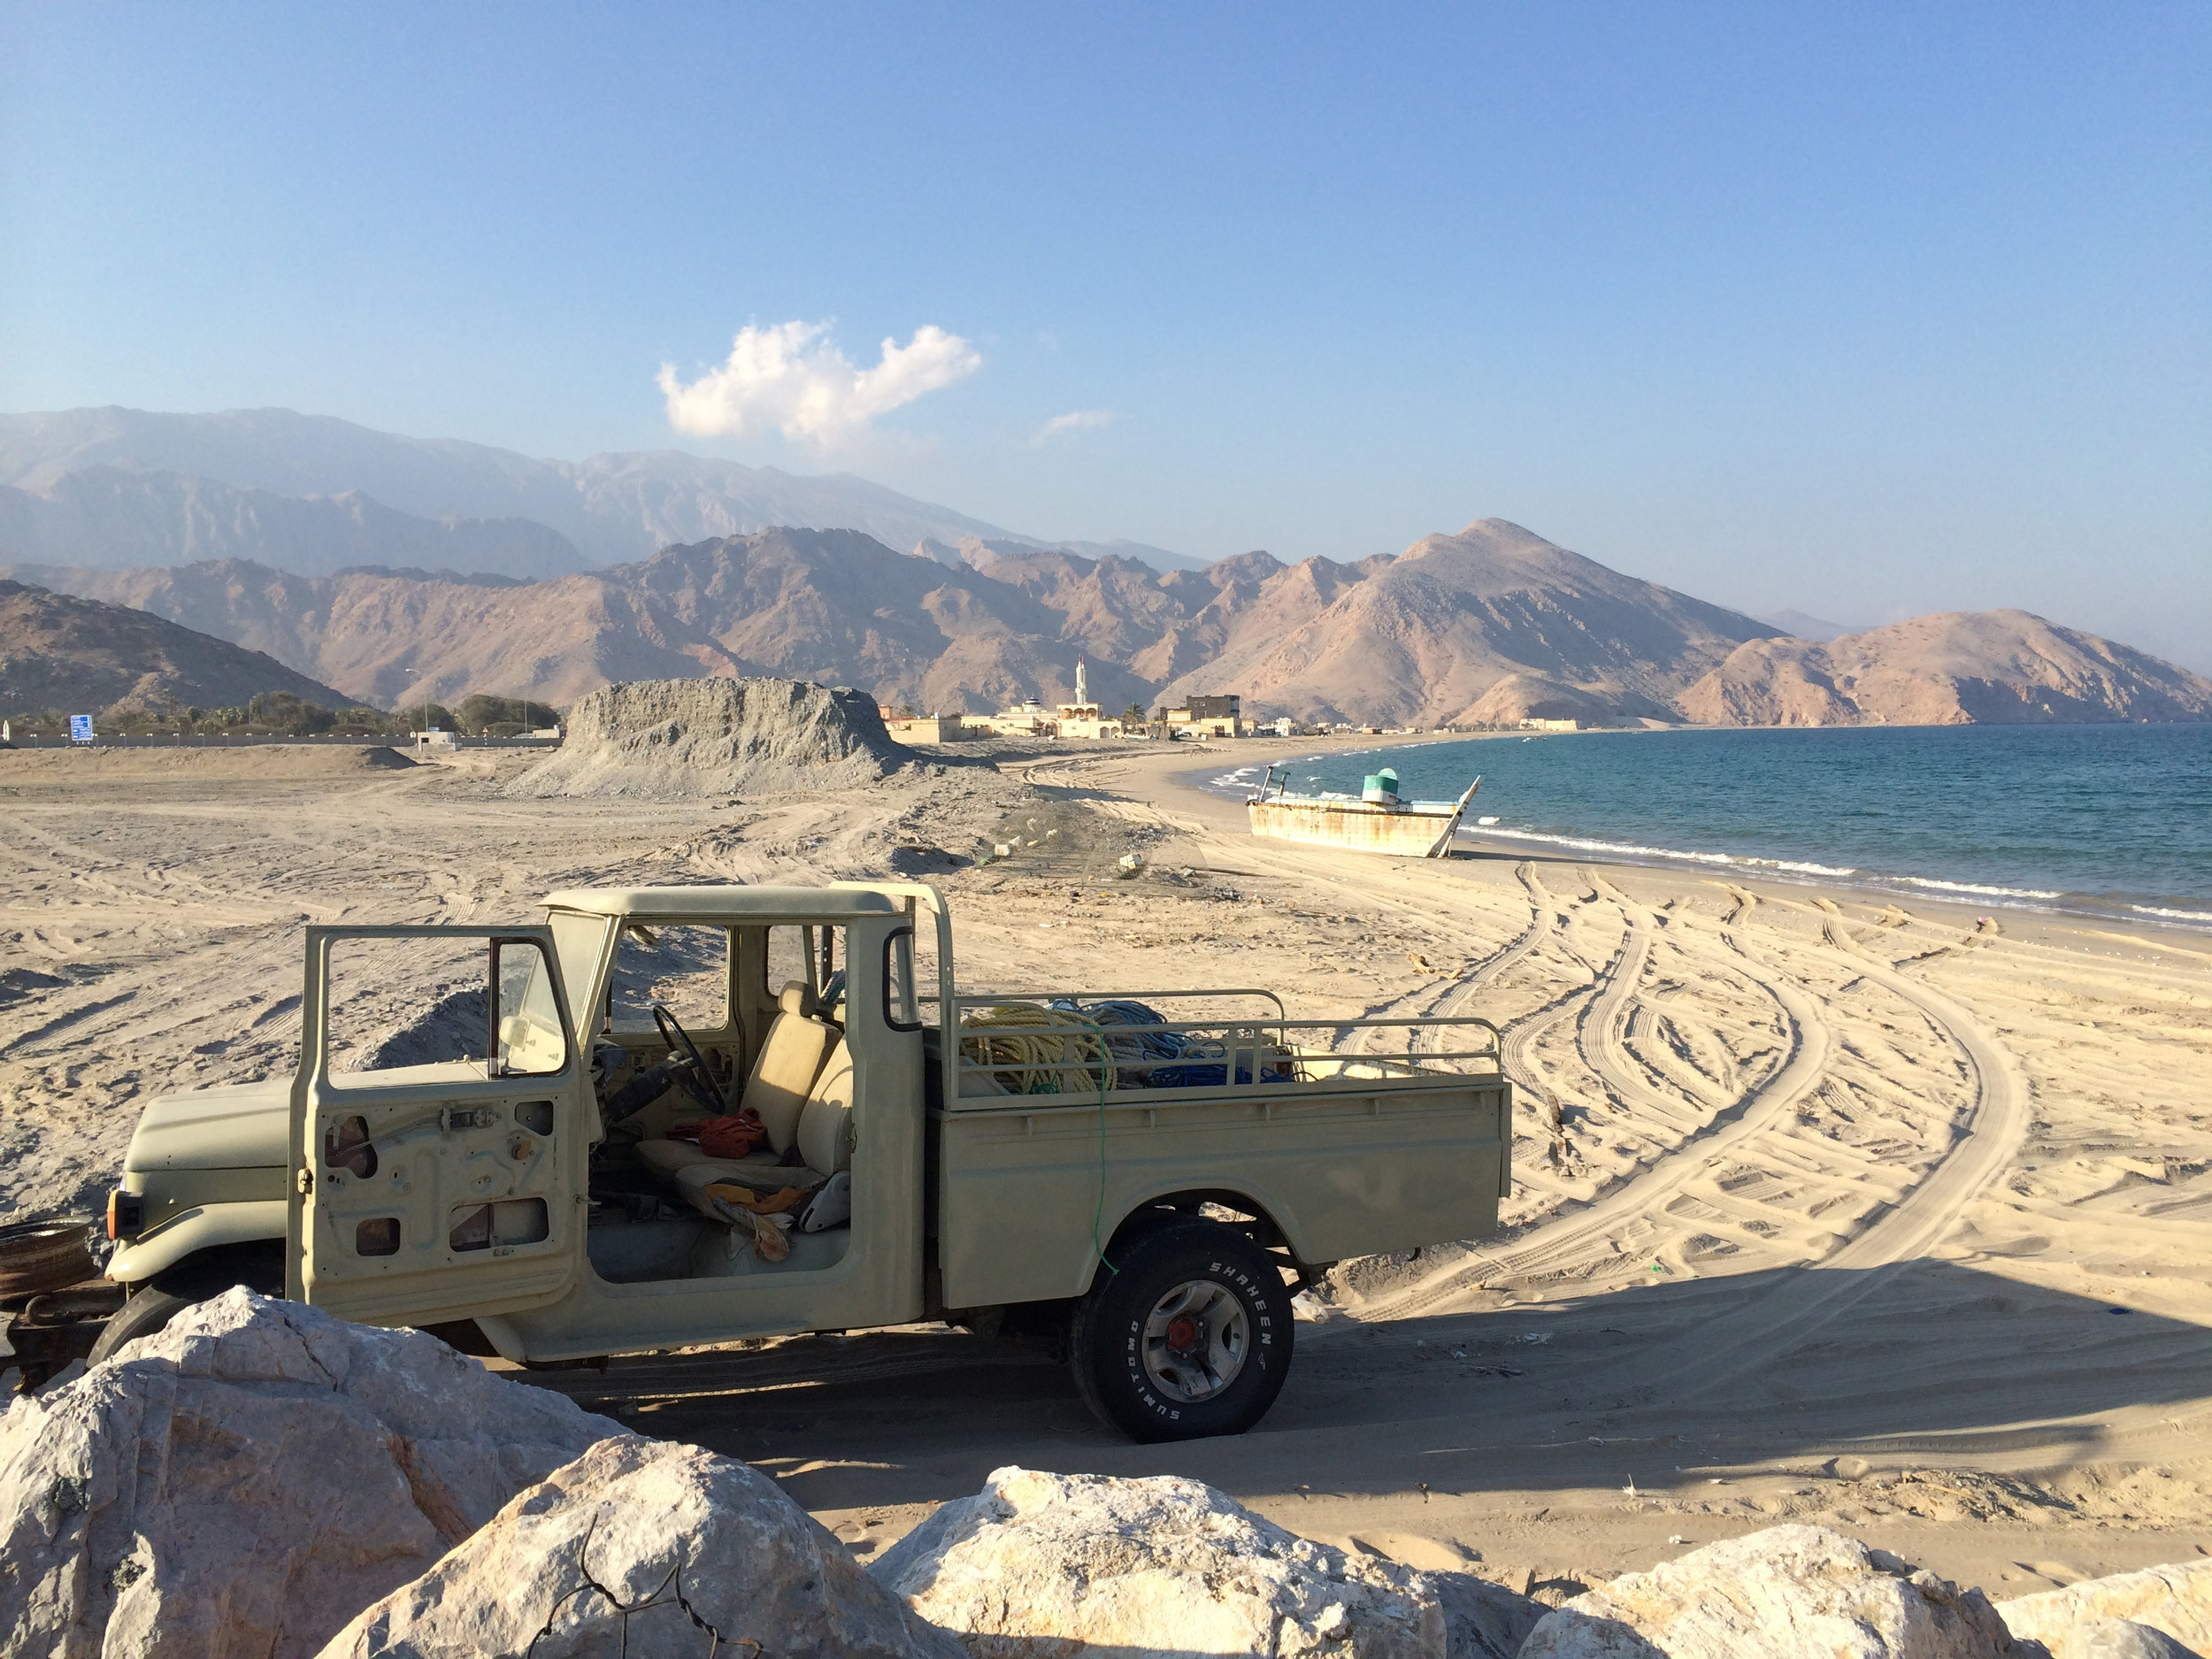 And old jeep sat abandoned on the beach in Lima, Oman